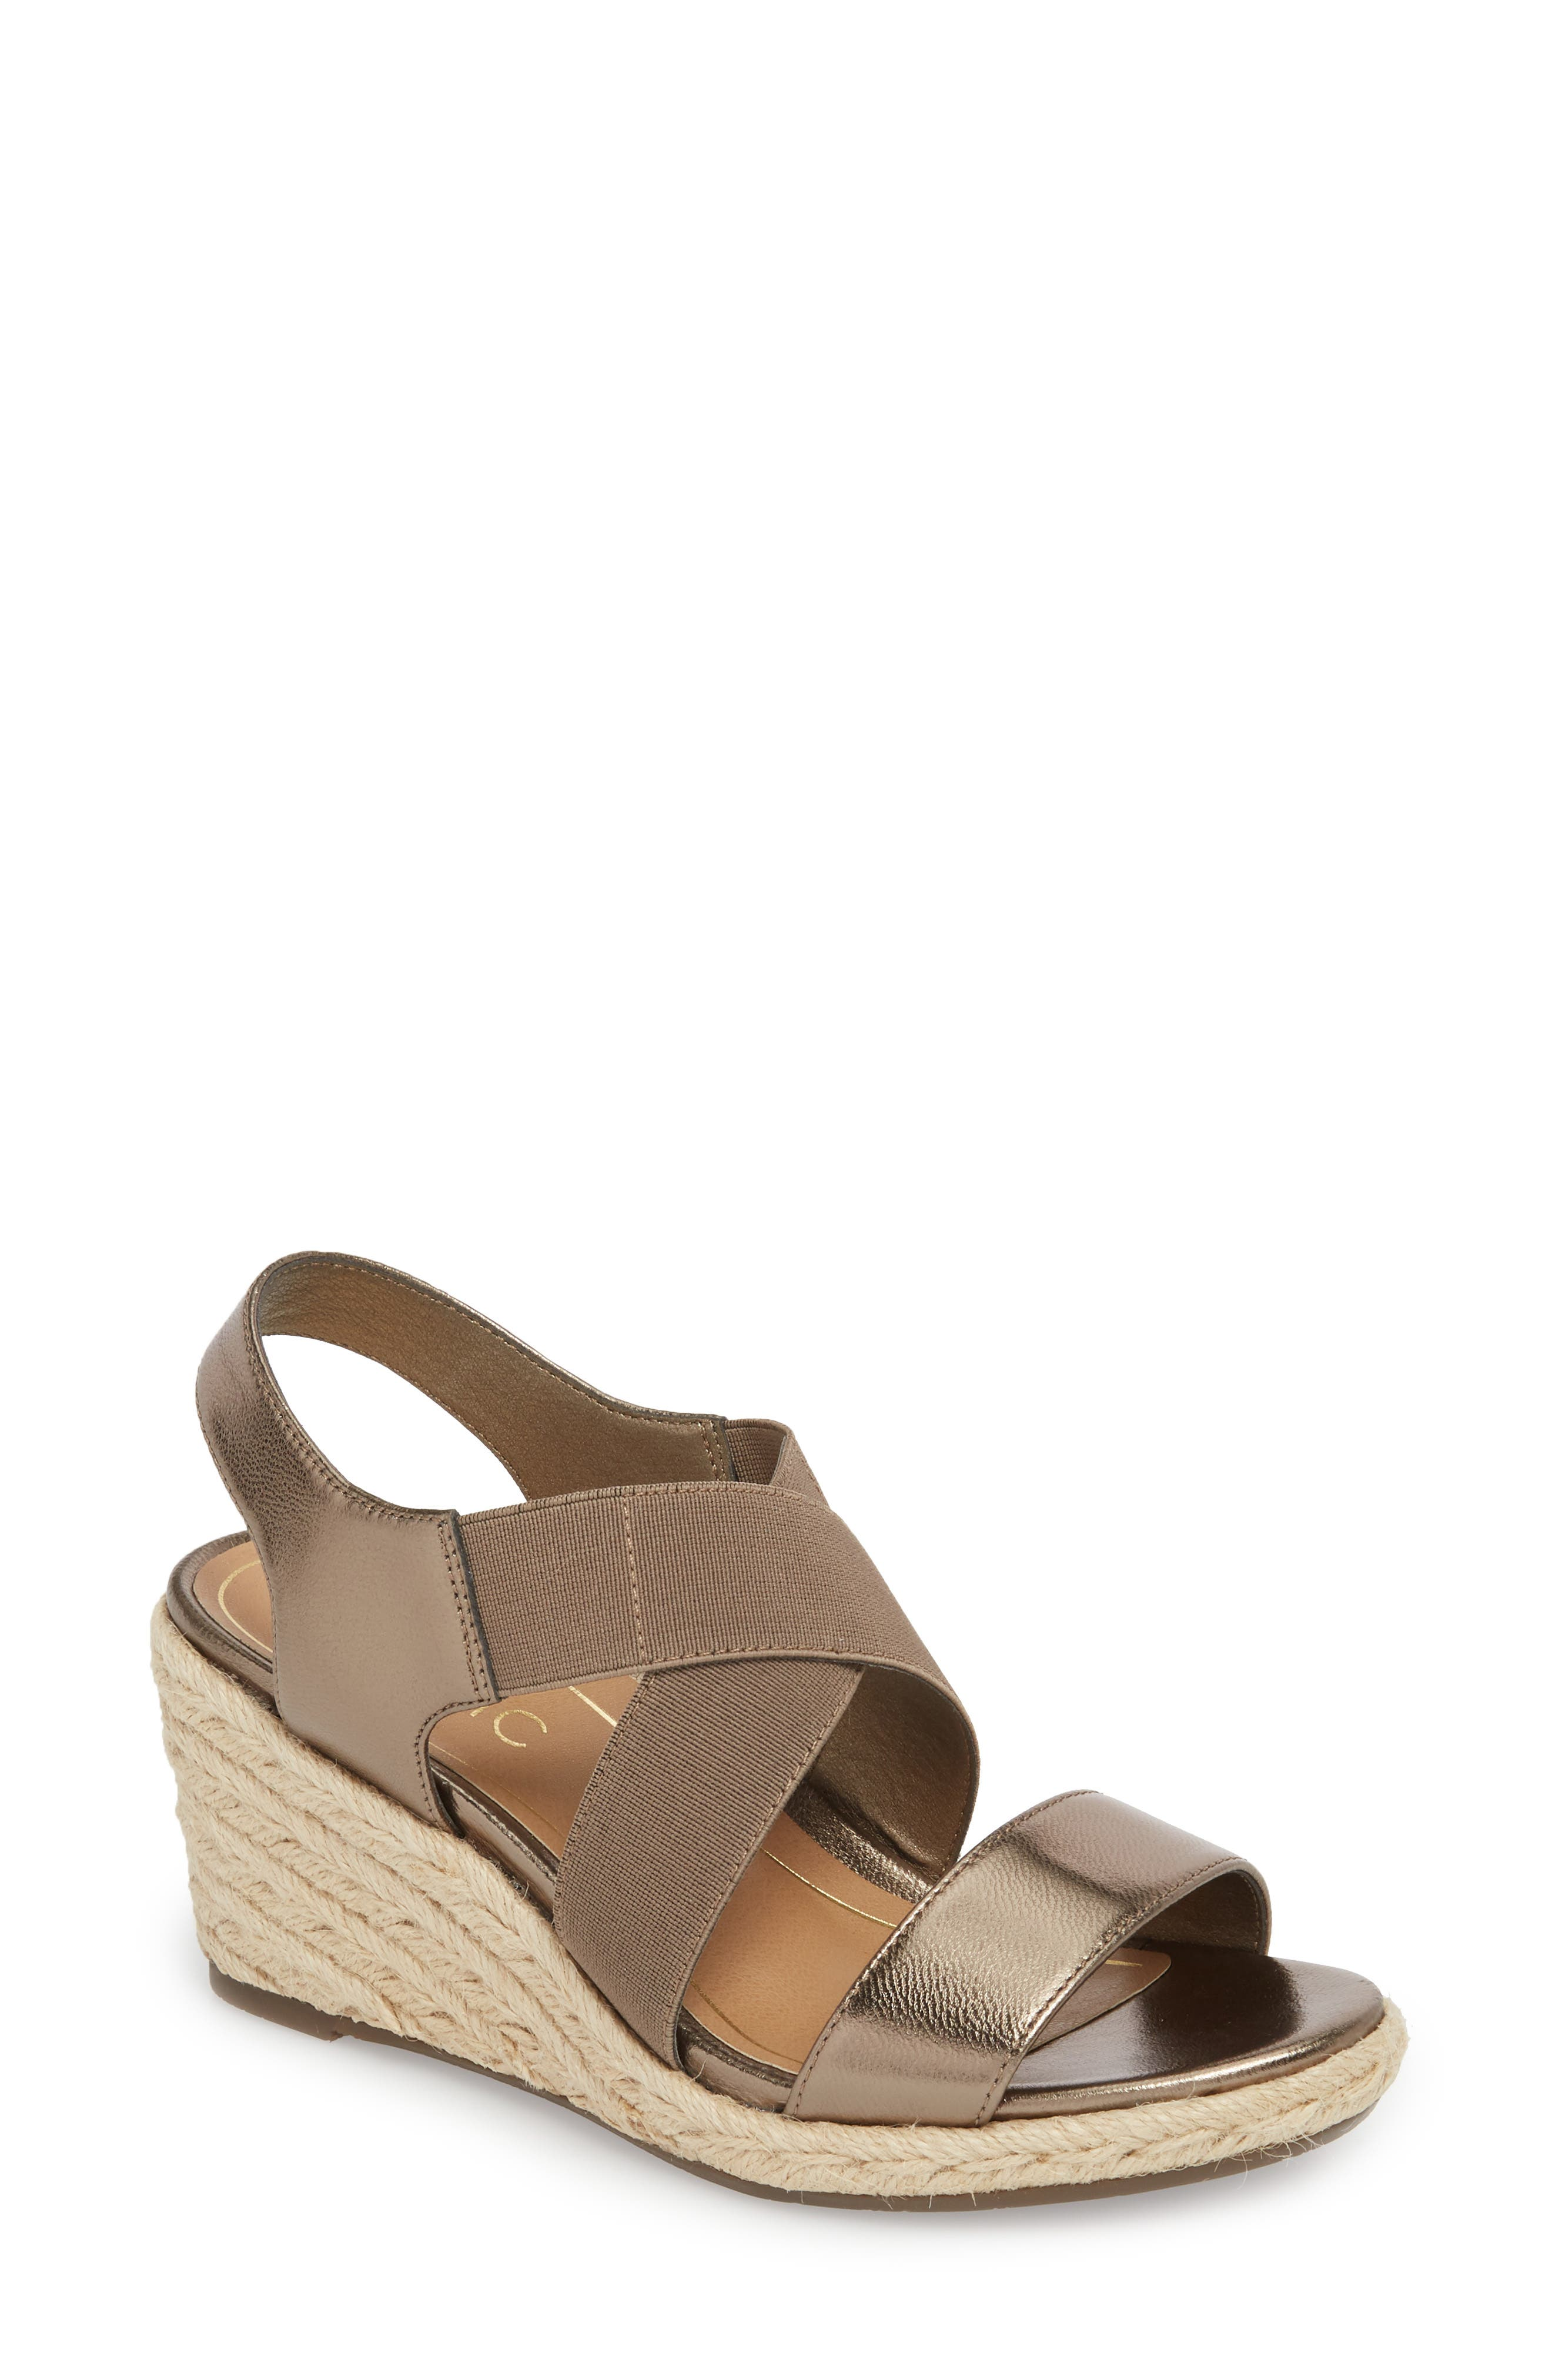 Ainsleigh Wedge Sandal,                             Main thumbnail 1, color,                             Dark Taupe Leather